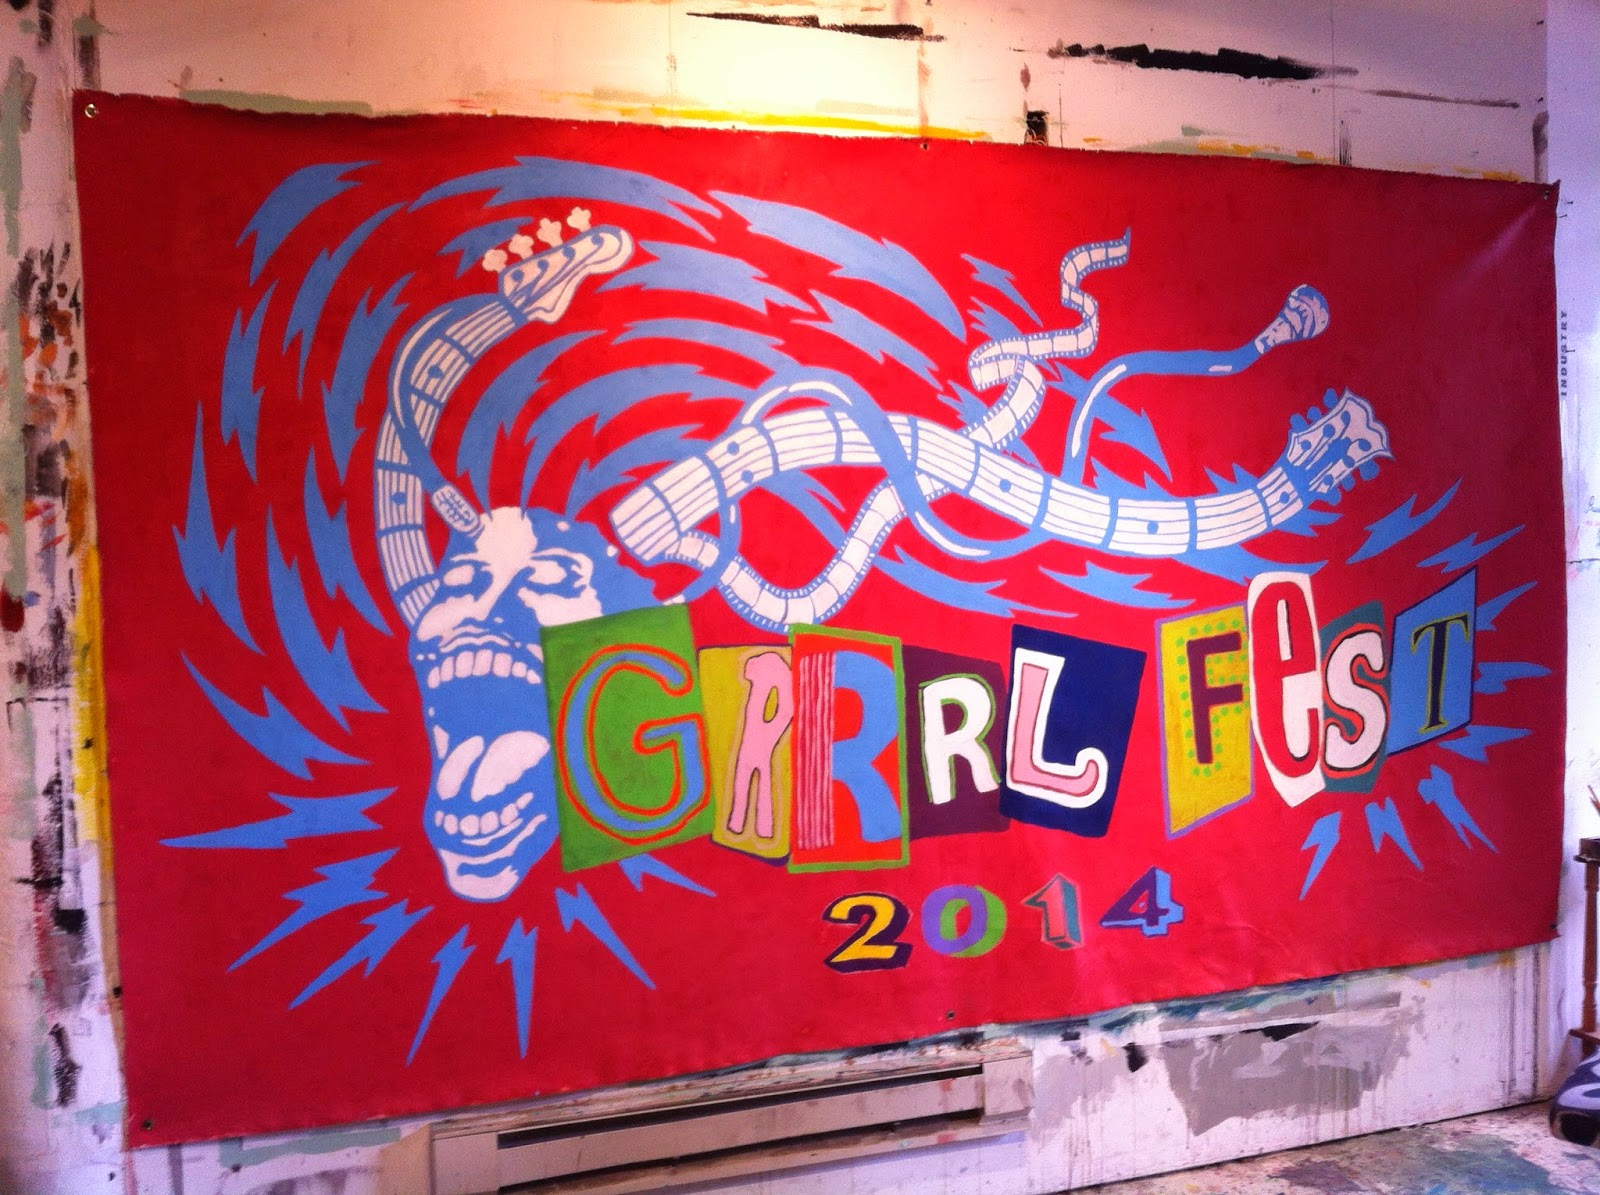 INTERVIEW: A Chat with Grrrl Fest Organizers